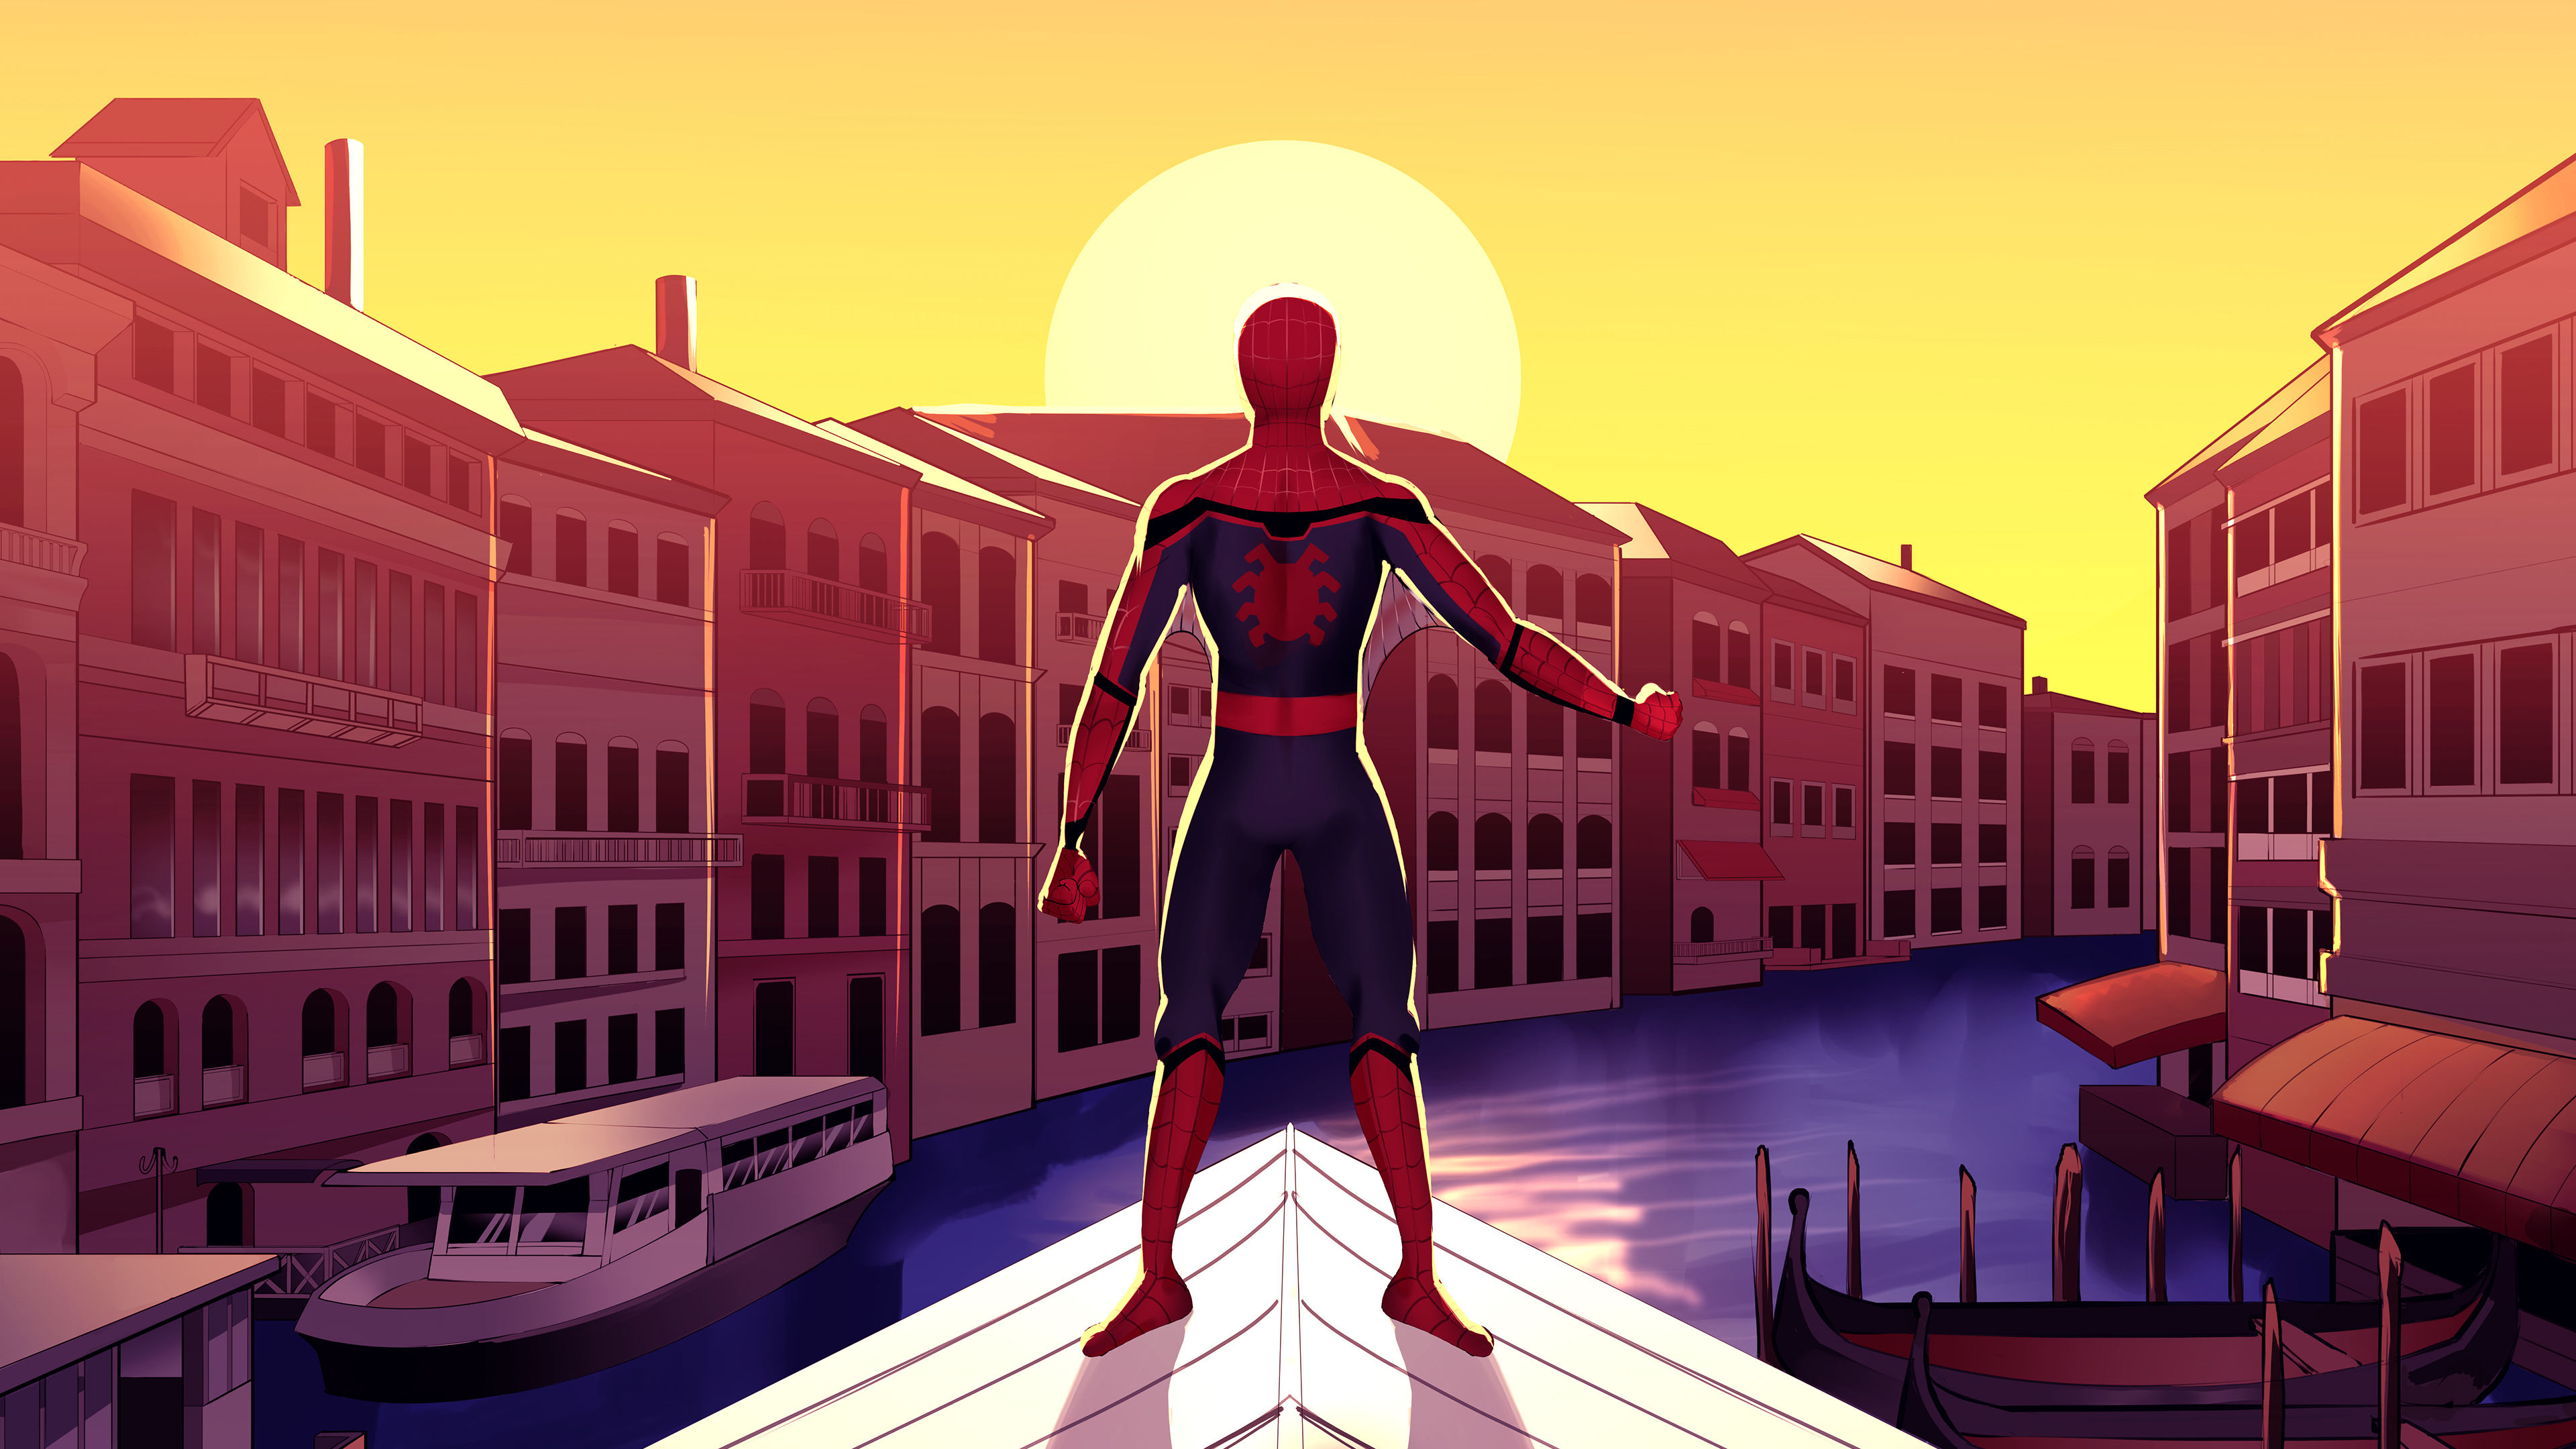 spiderman in venice 1576090196 - Spiderman In Venice - Spiderman In Venice 4k wallpaper